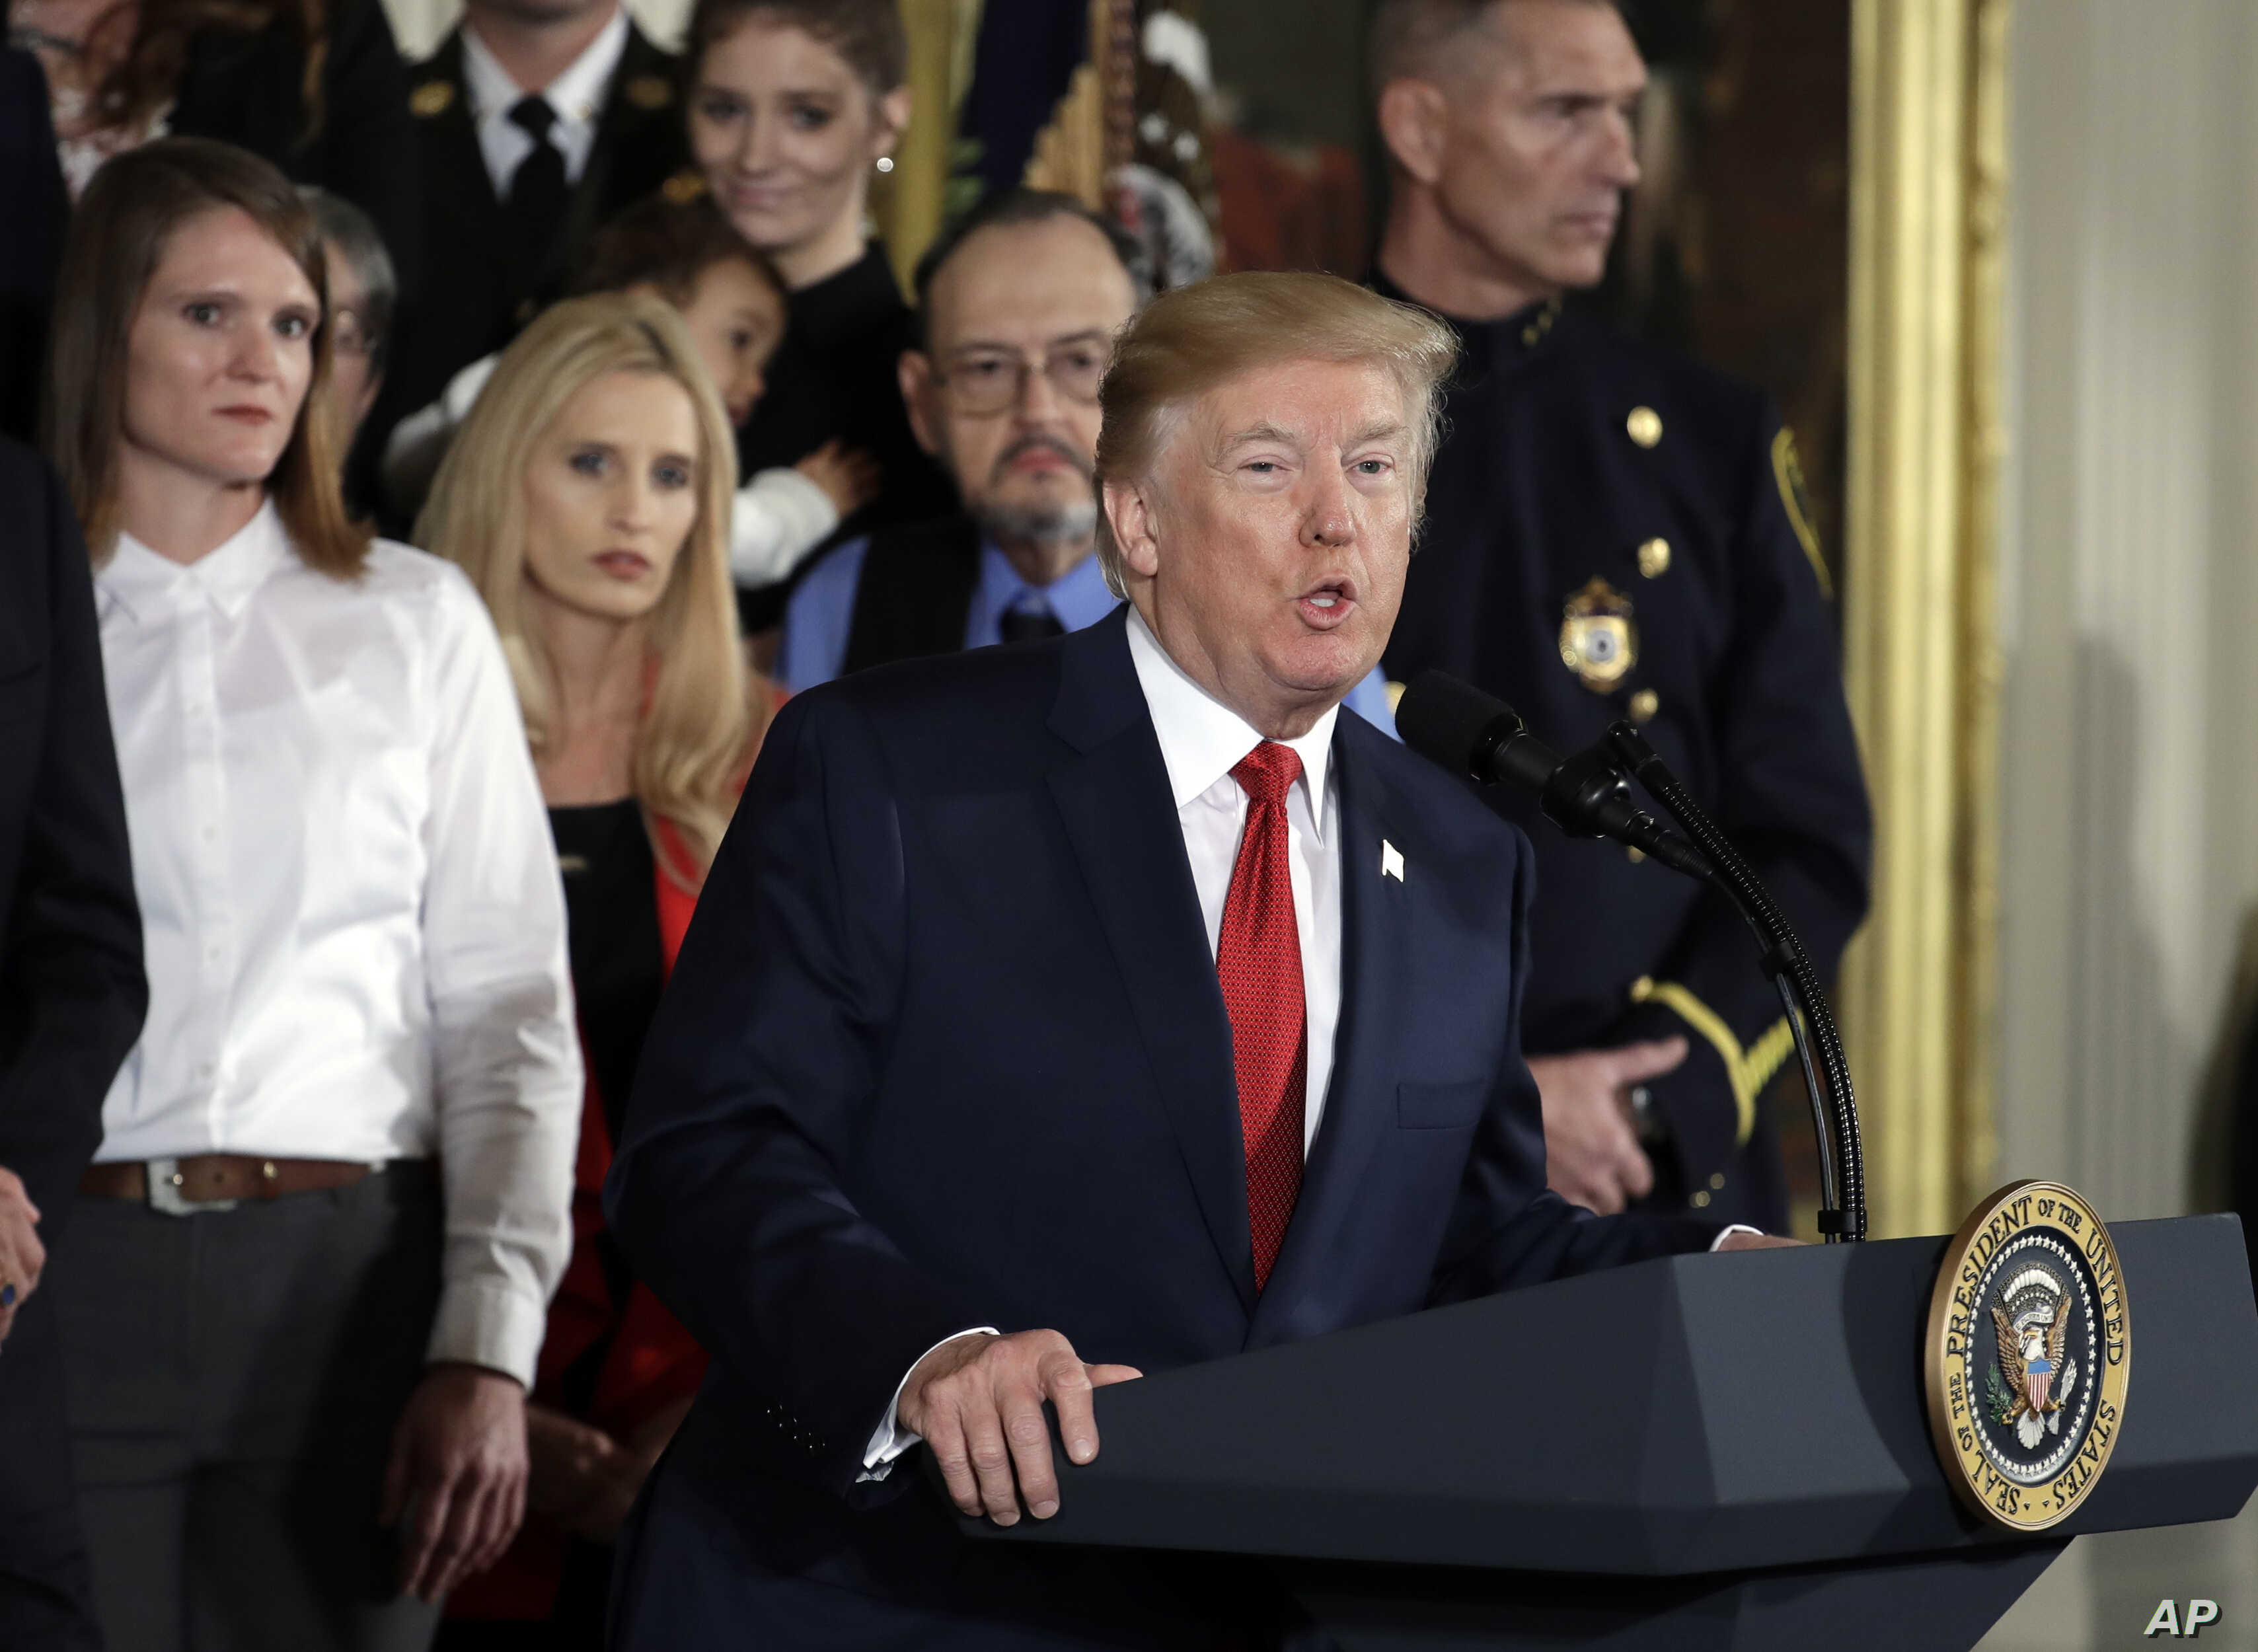 President Donald Trump speaks during an event declaring the opioid crisis in the U.S. a national public health emergency, in the East Room of the White House, Oct. 26, 2017, in Washington.